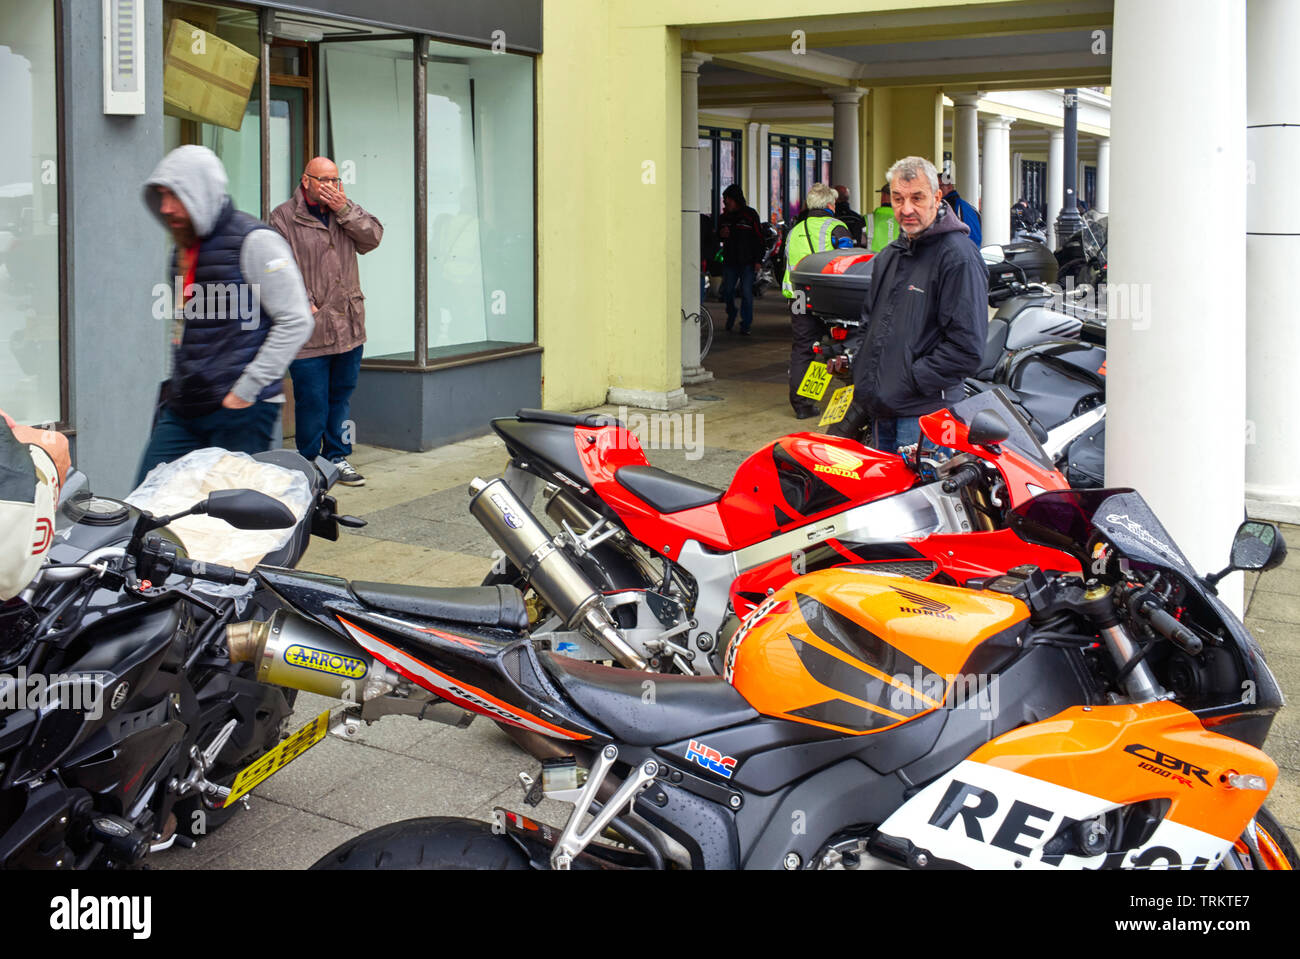 Visiting TT race fans looking at bikes during wet weather, including a man yawning - Stock Image